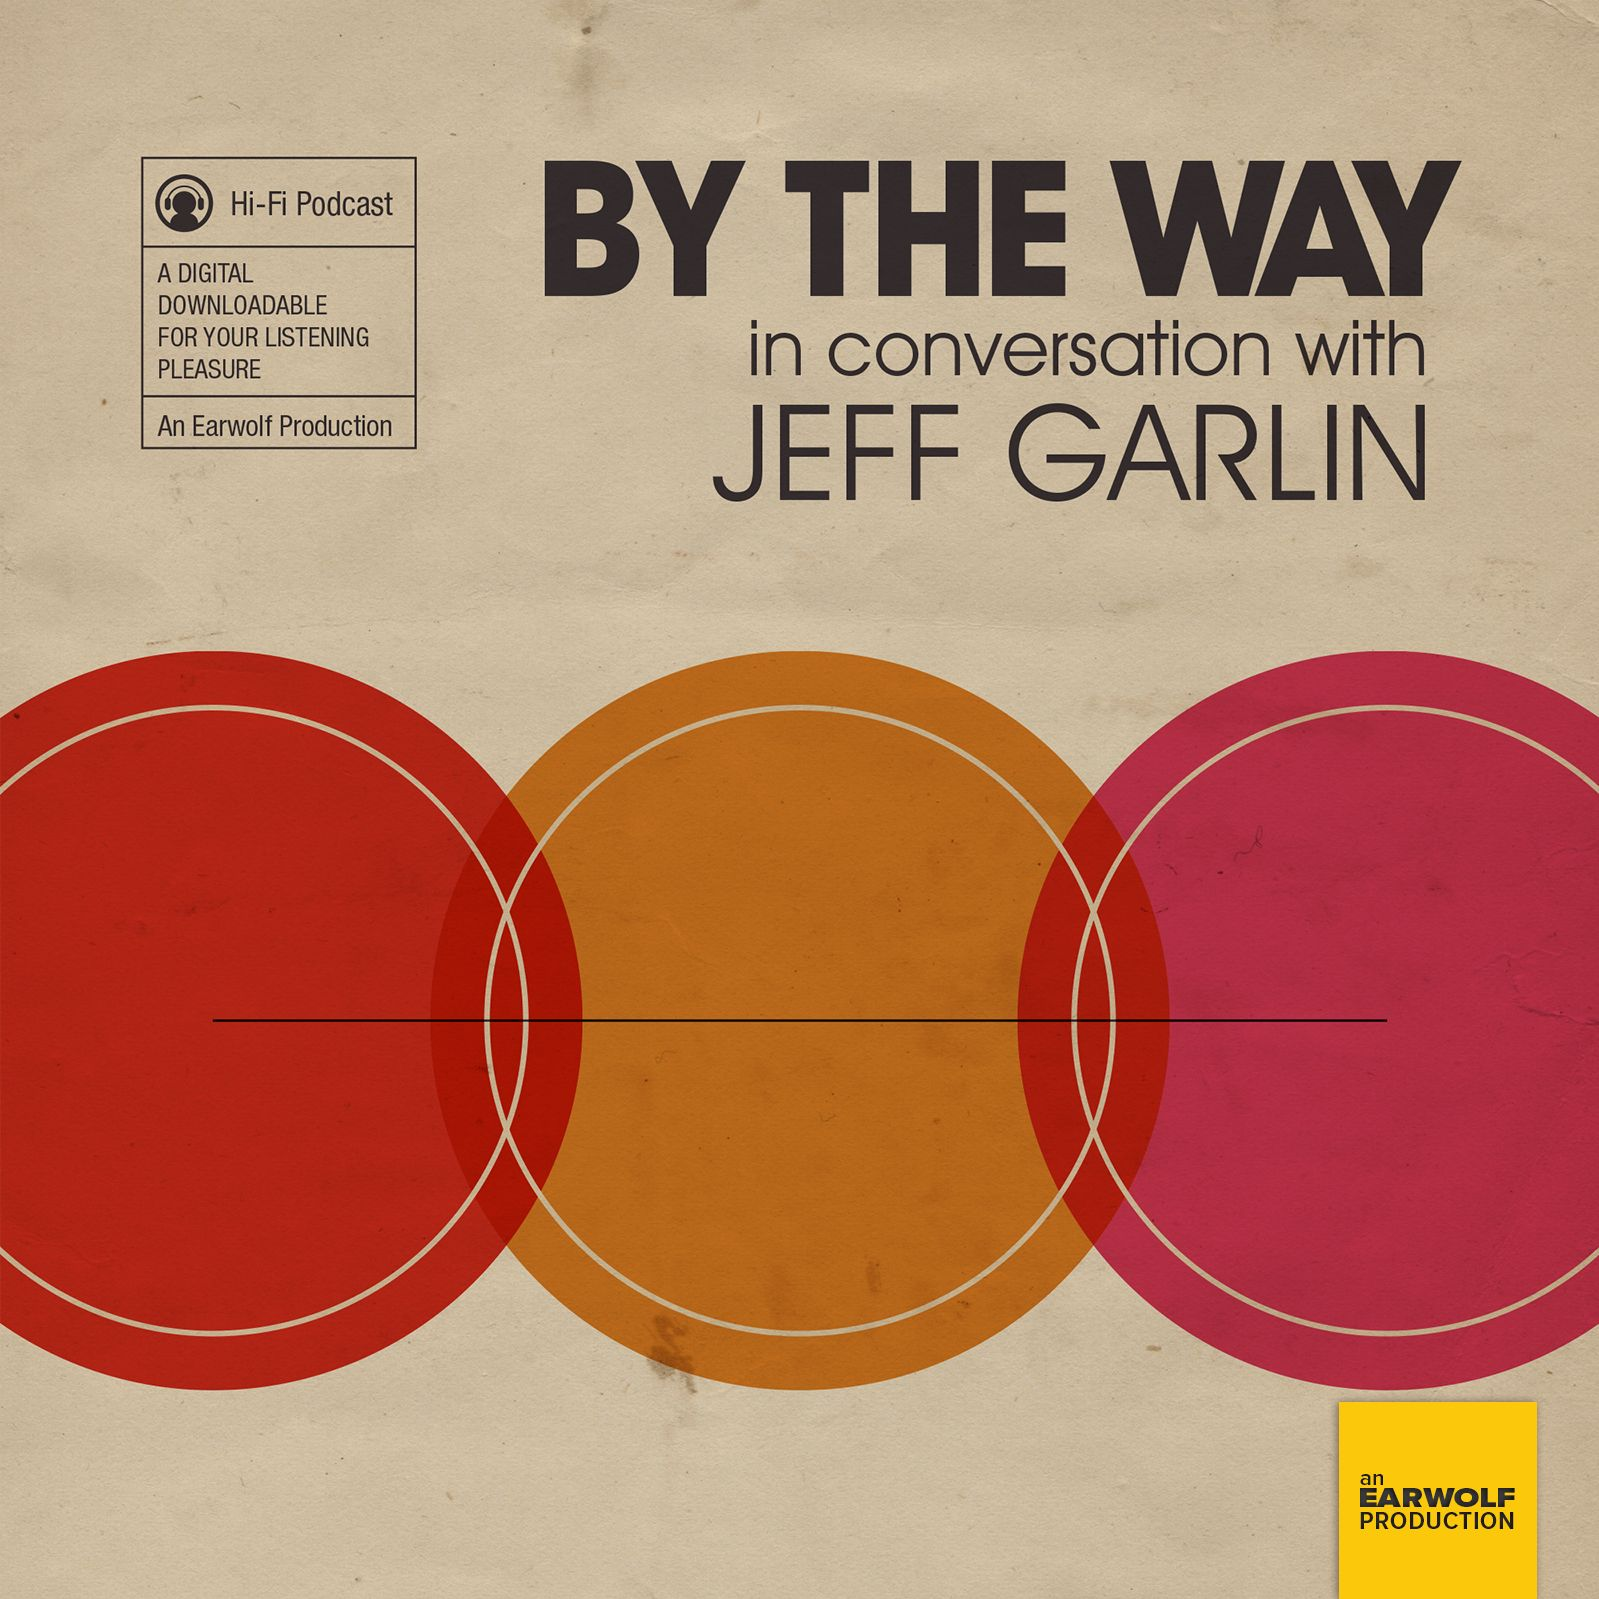 BTW with Jeff Garlin | Listen via Stitcher for Podcasts